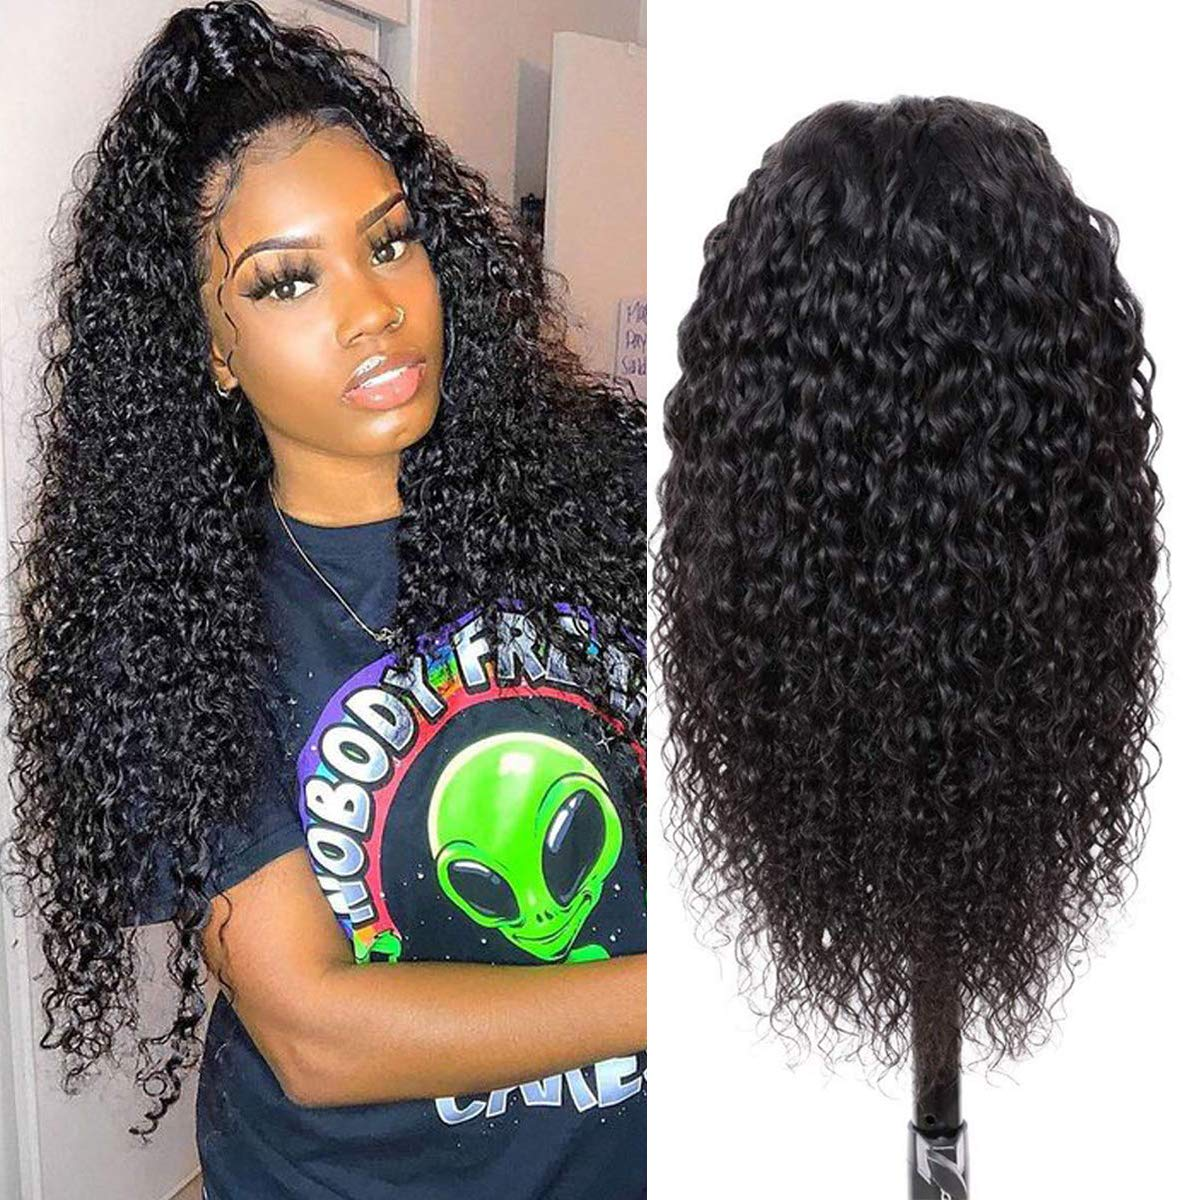 LUMIERE Hair 24inch Kinky Curly Human Wigs Atlanta Mall Closure OFFicial store 4x4 Lace